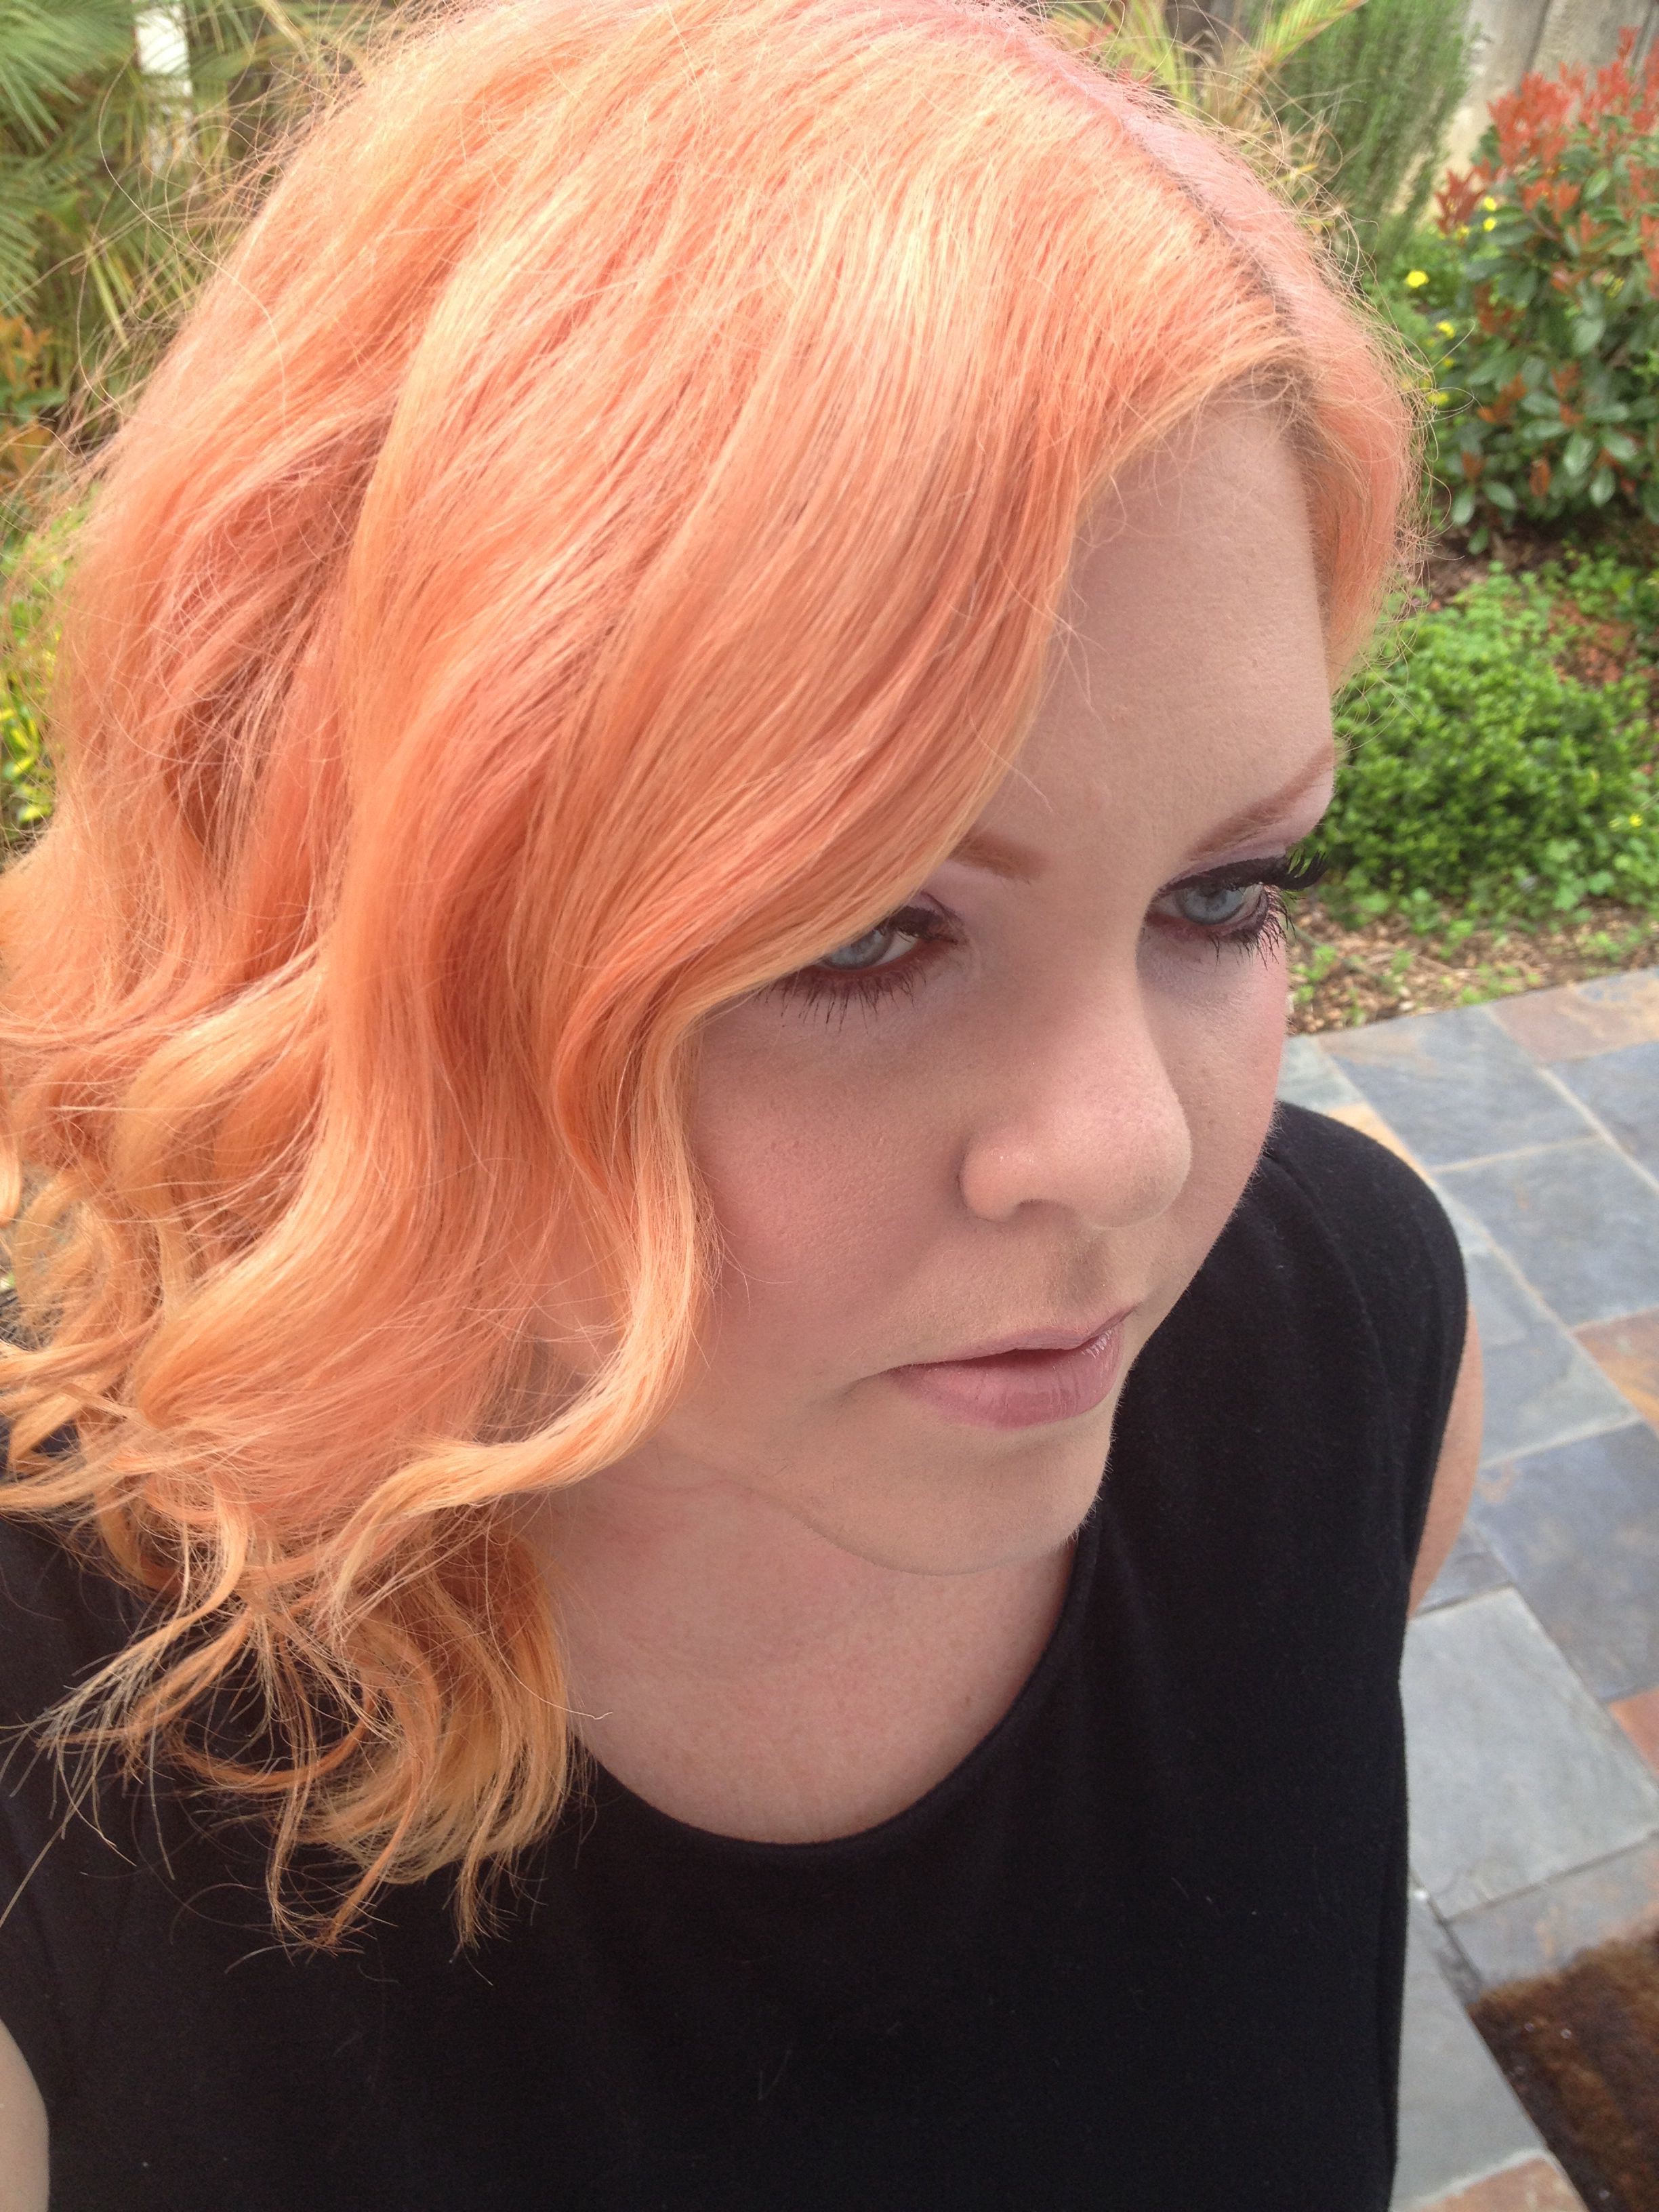 My Rose Gold Hair Took Two Weeks Of Fading The Hot Pink And Orange Adore Brand Hair Dyes Used A Curling Wand To Get Salmon Hair Hair Styles Long Hair Styles